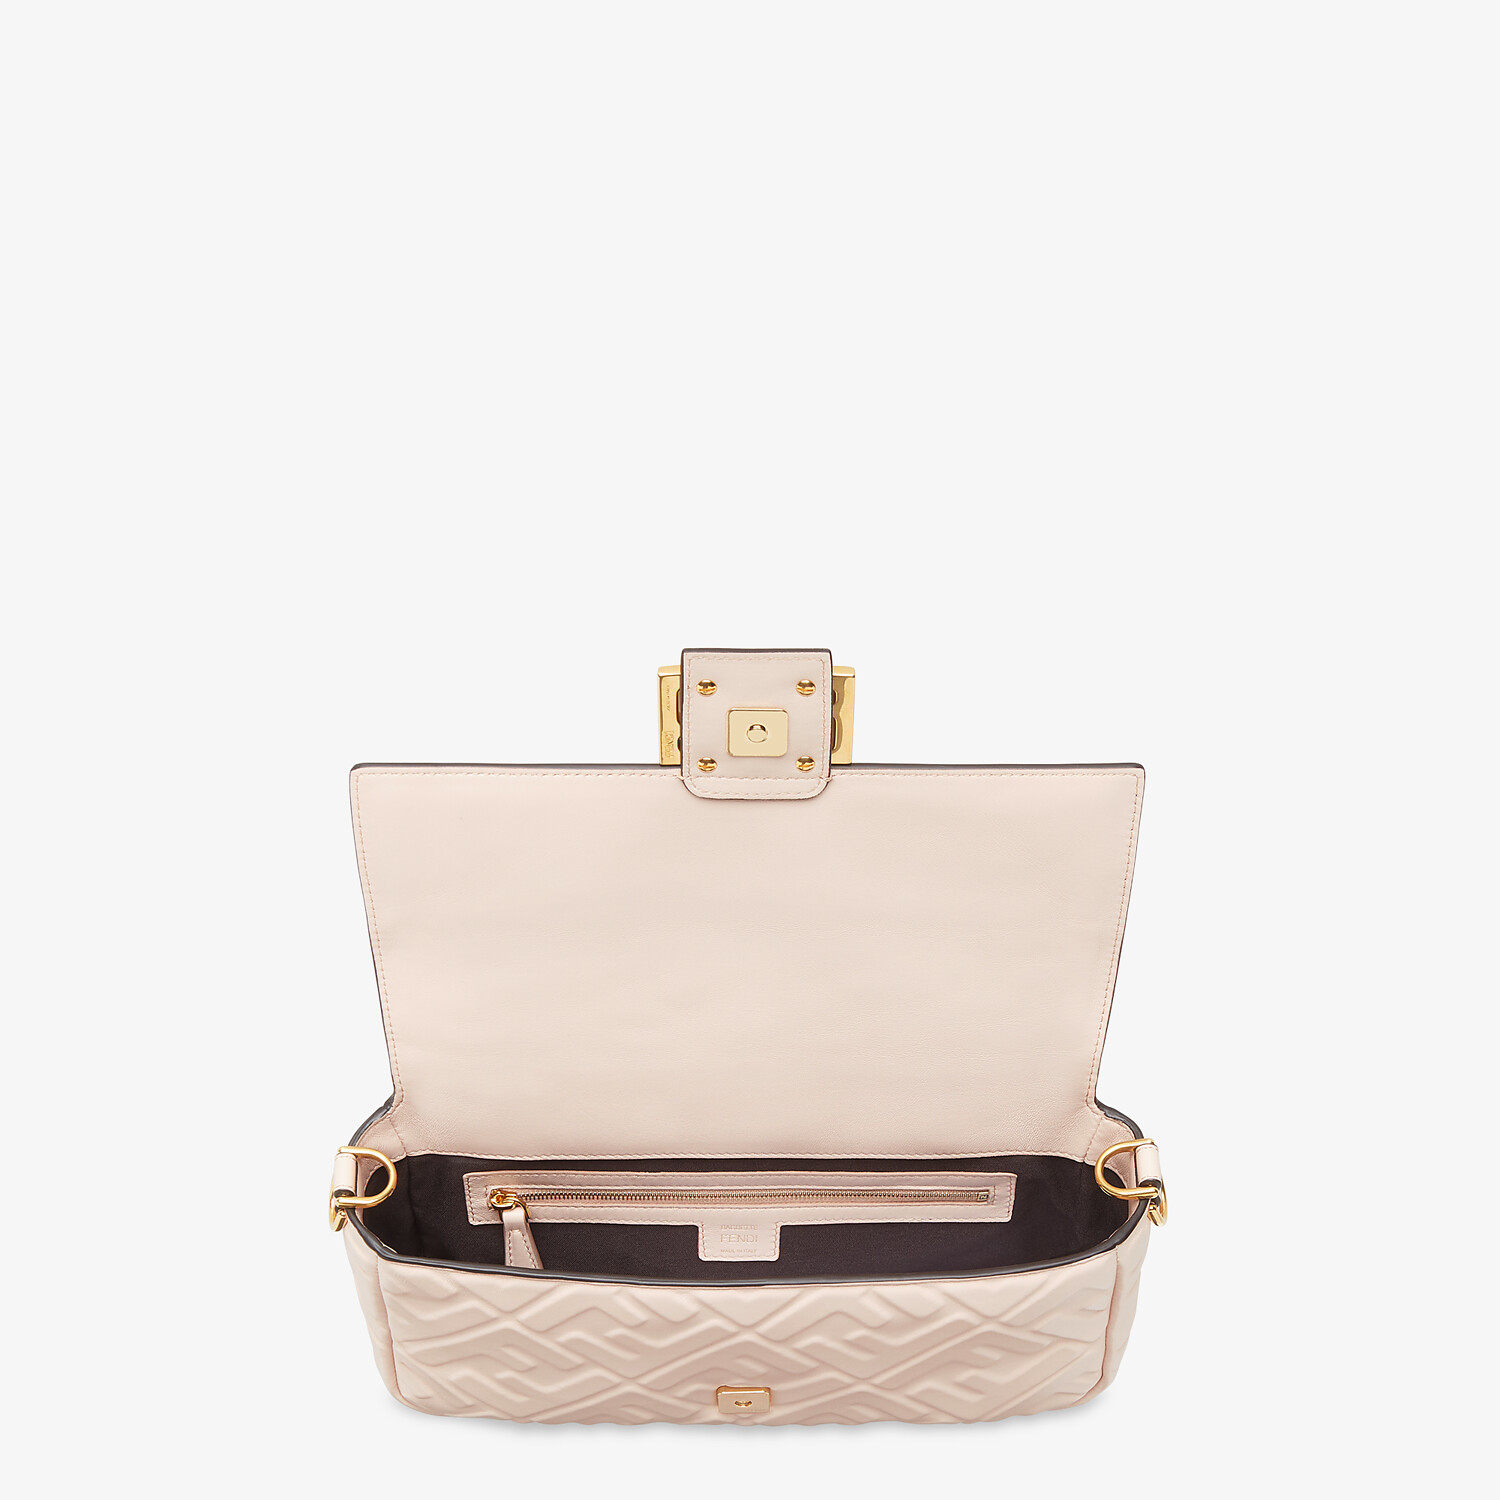 FENDI BAGUETTE - Pink nappa leather FF bag - view 5 detail